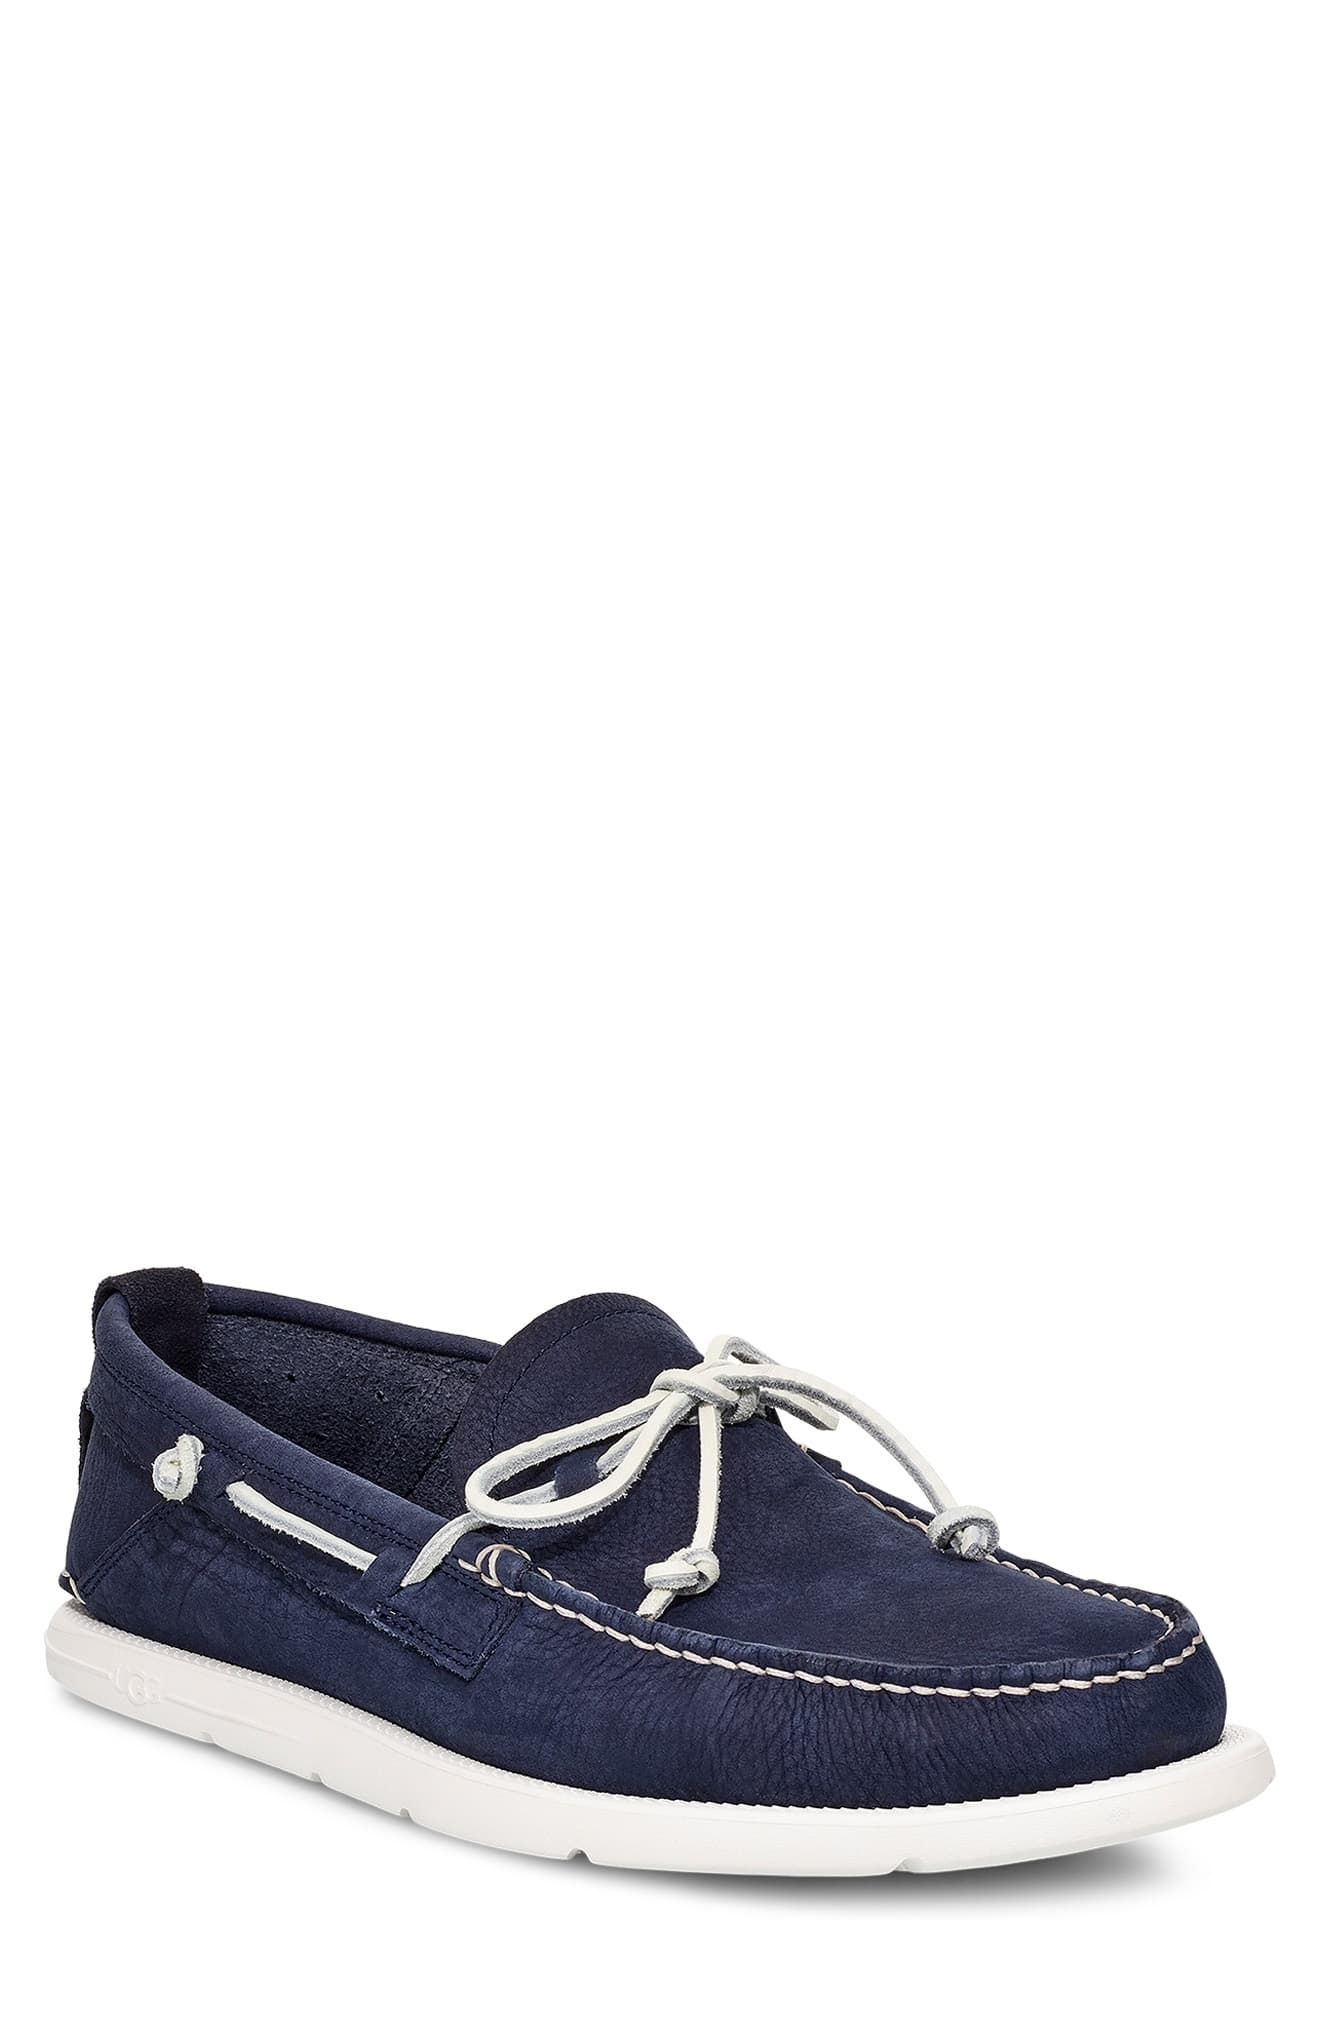 ab70e269d62 UGG Beach Moc Boat Shoe in 2019 | Products | Boat shoes, Uggs, Shoes